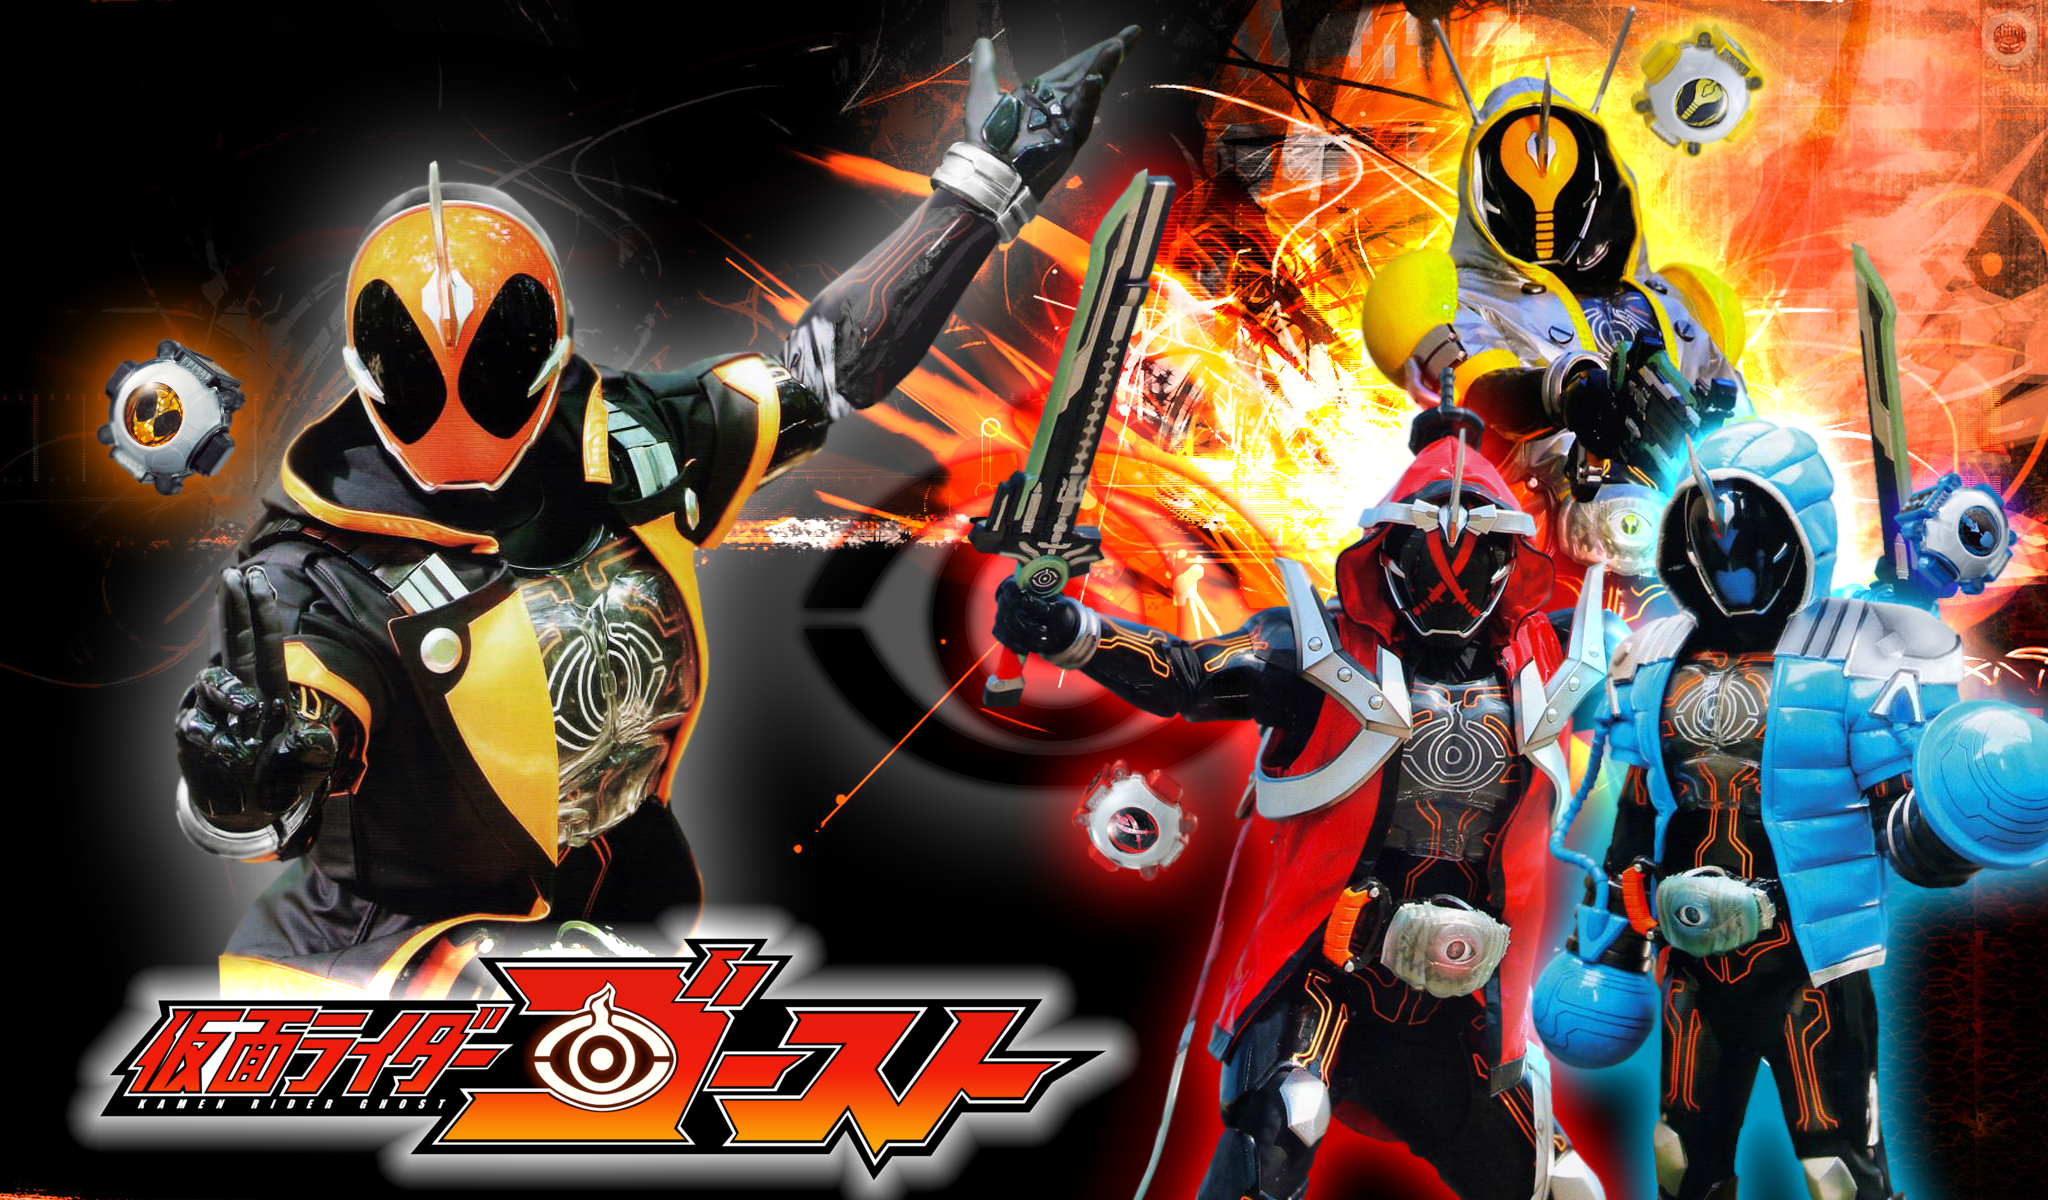 [Image: kamen_rider_ghost_wallpaper_3_by_malecoc-d999y0z.png]